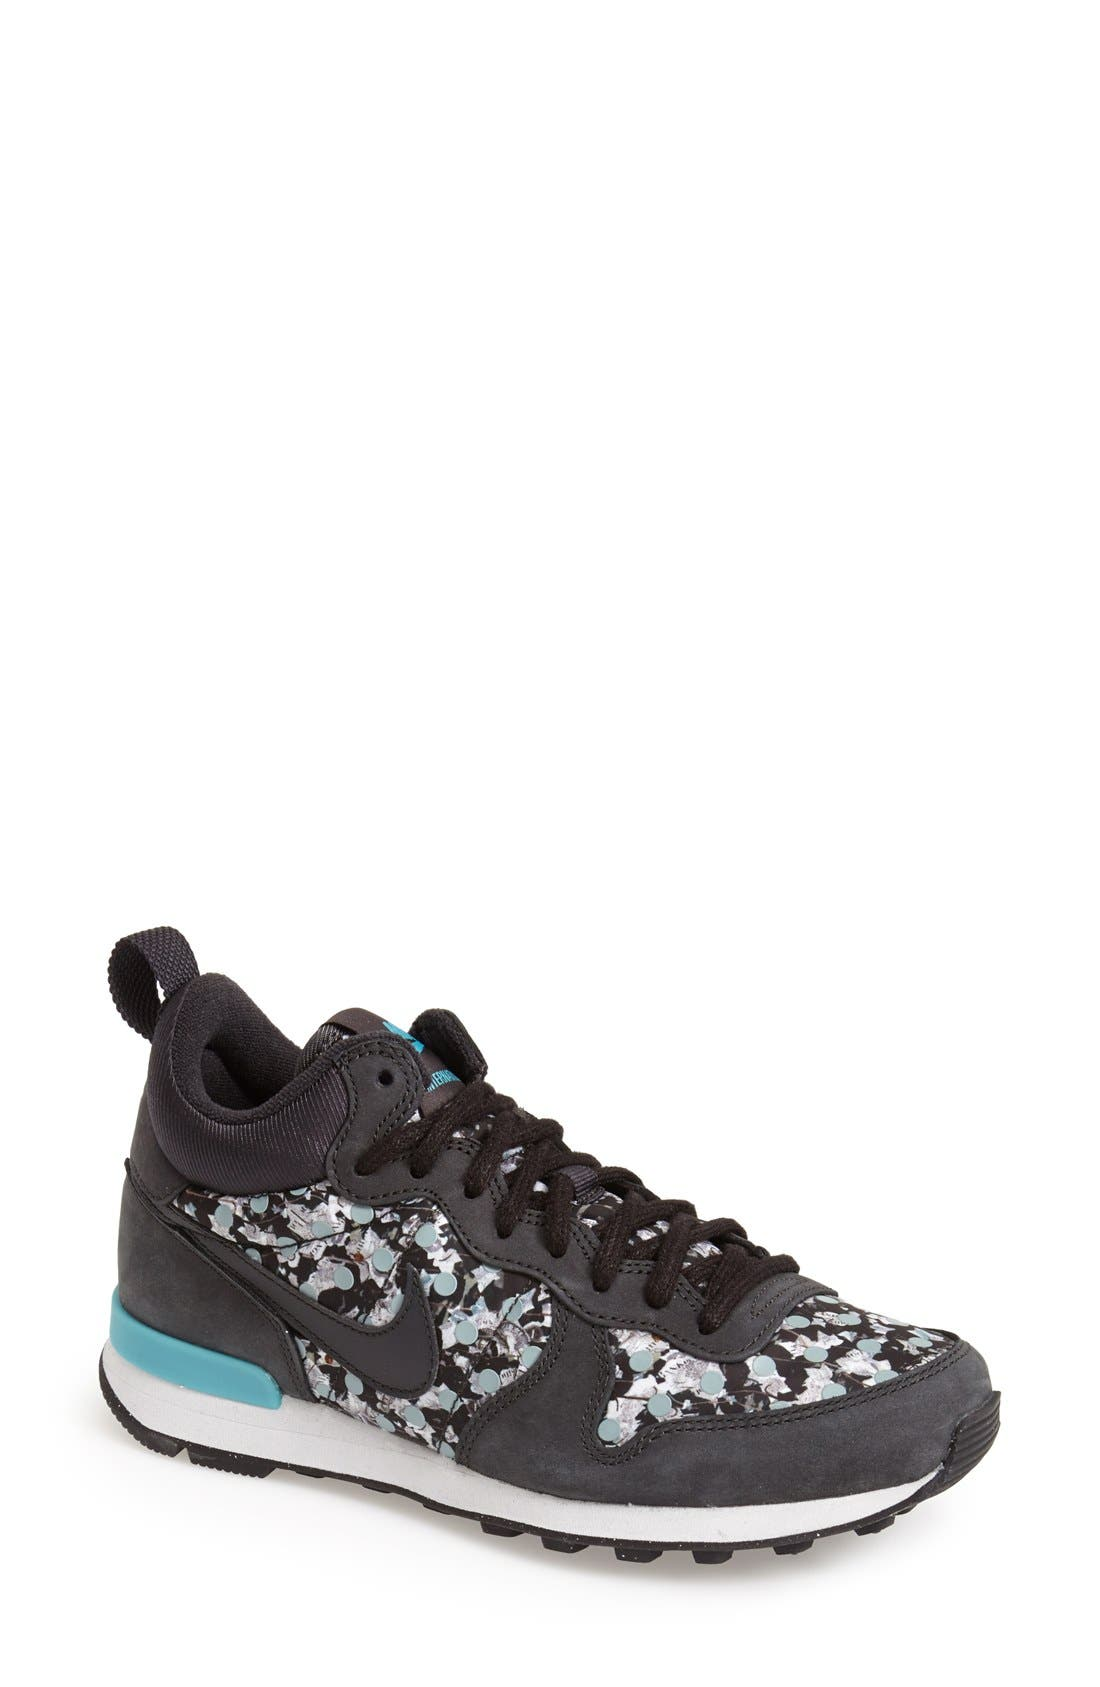 Main Image - Nike 'Internationalist Mid - Liberty' Sneaker (Women)